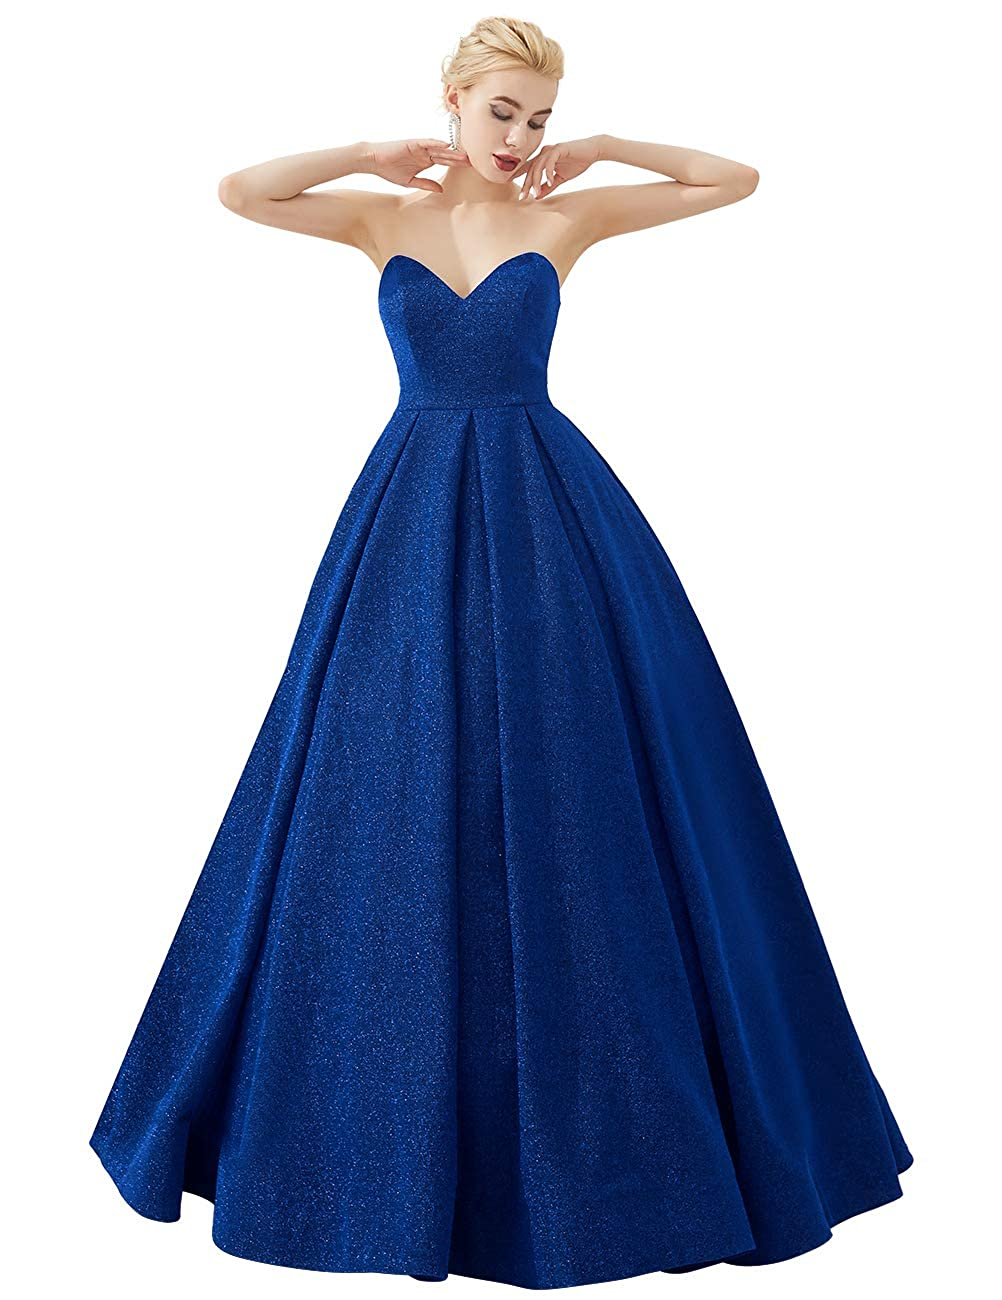 Royal bluee VKBRIDAL Women's Glittery Prom Dresses Long Formal Evening Party Ball Gowns